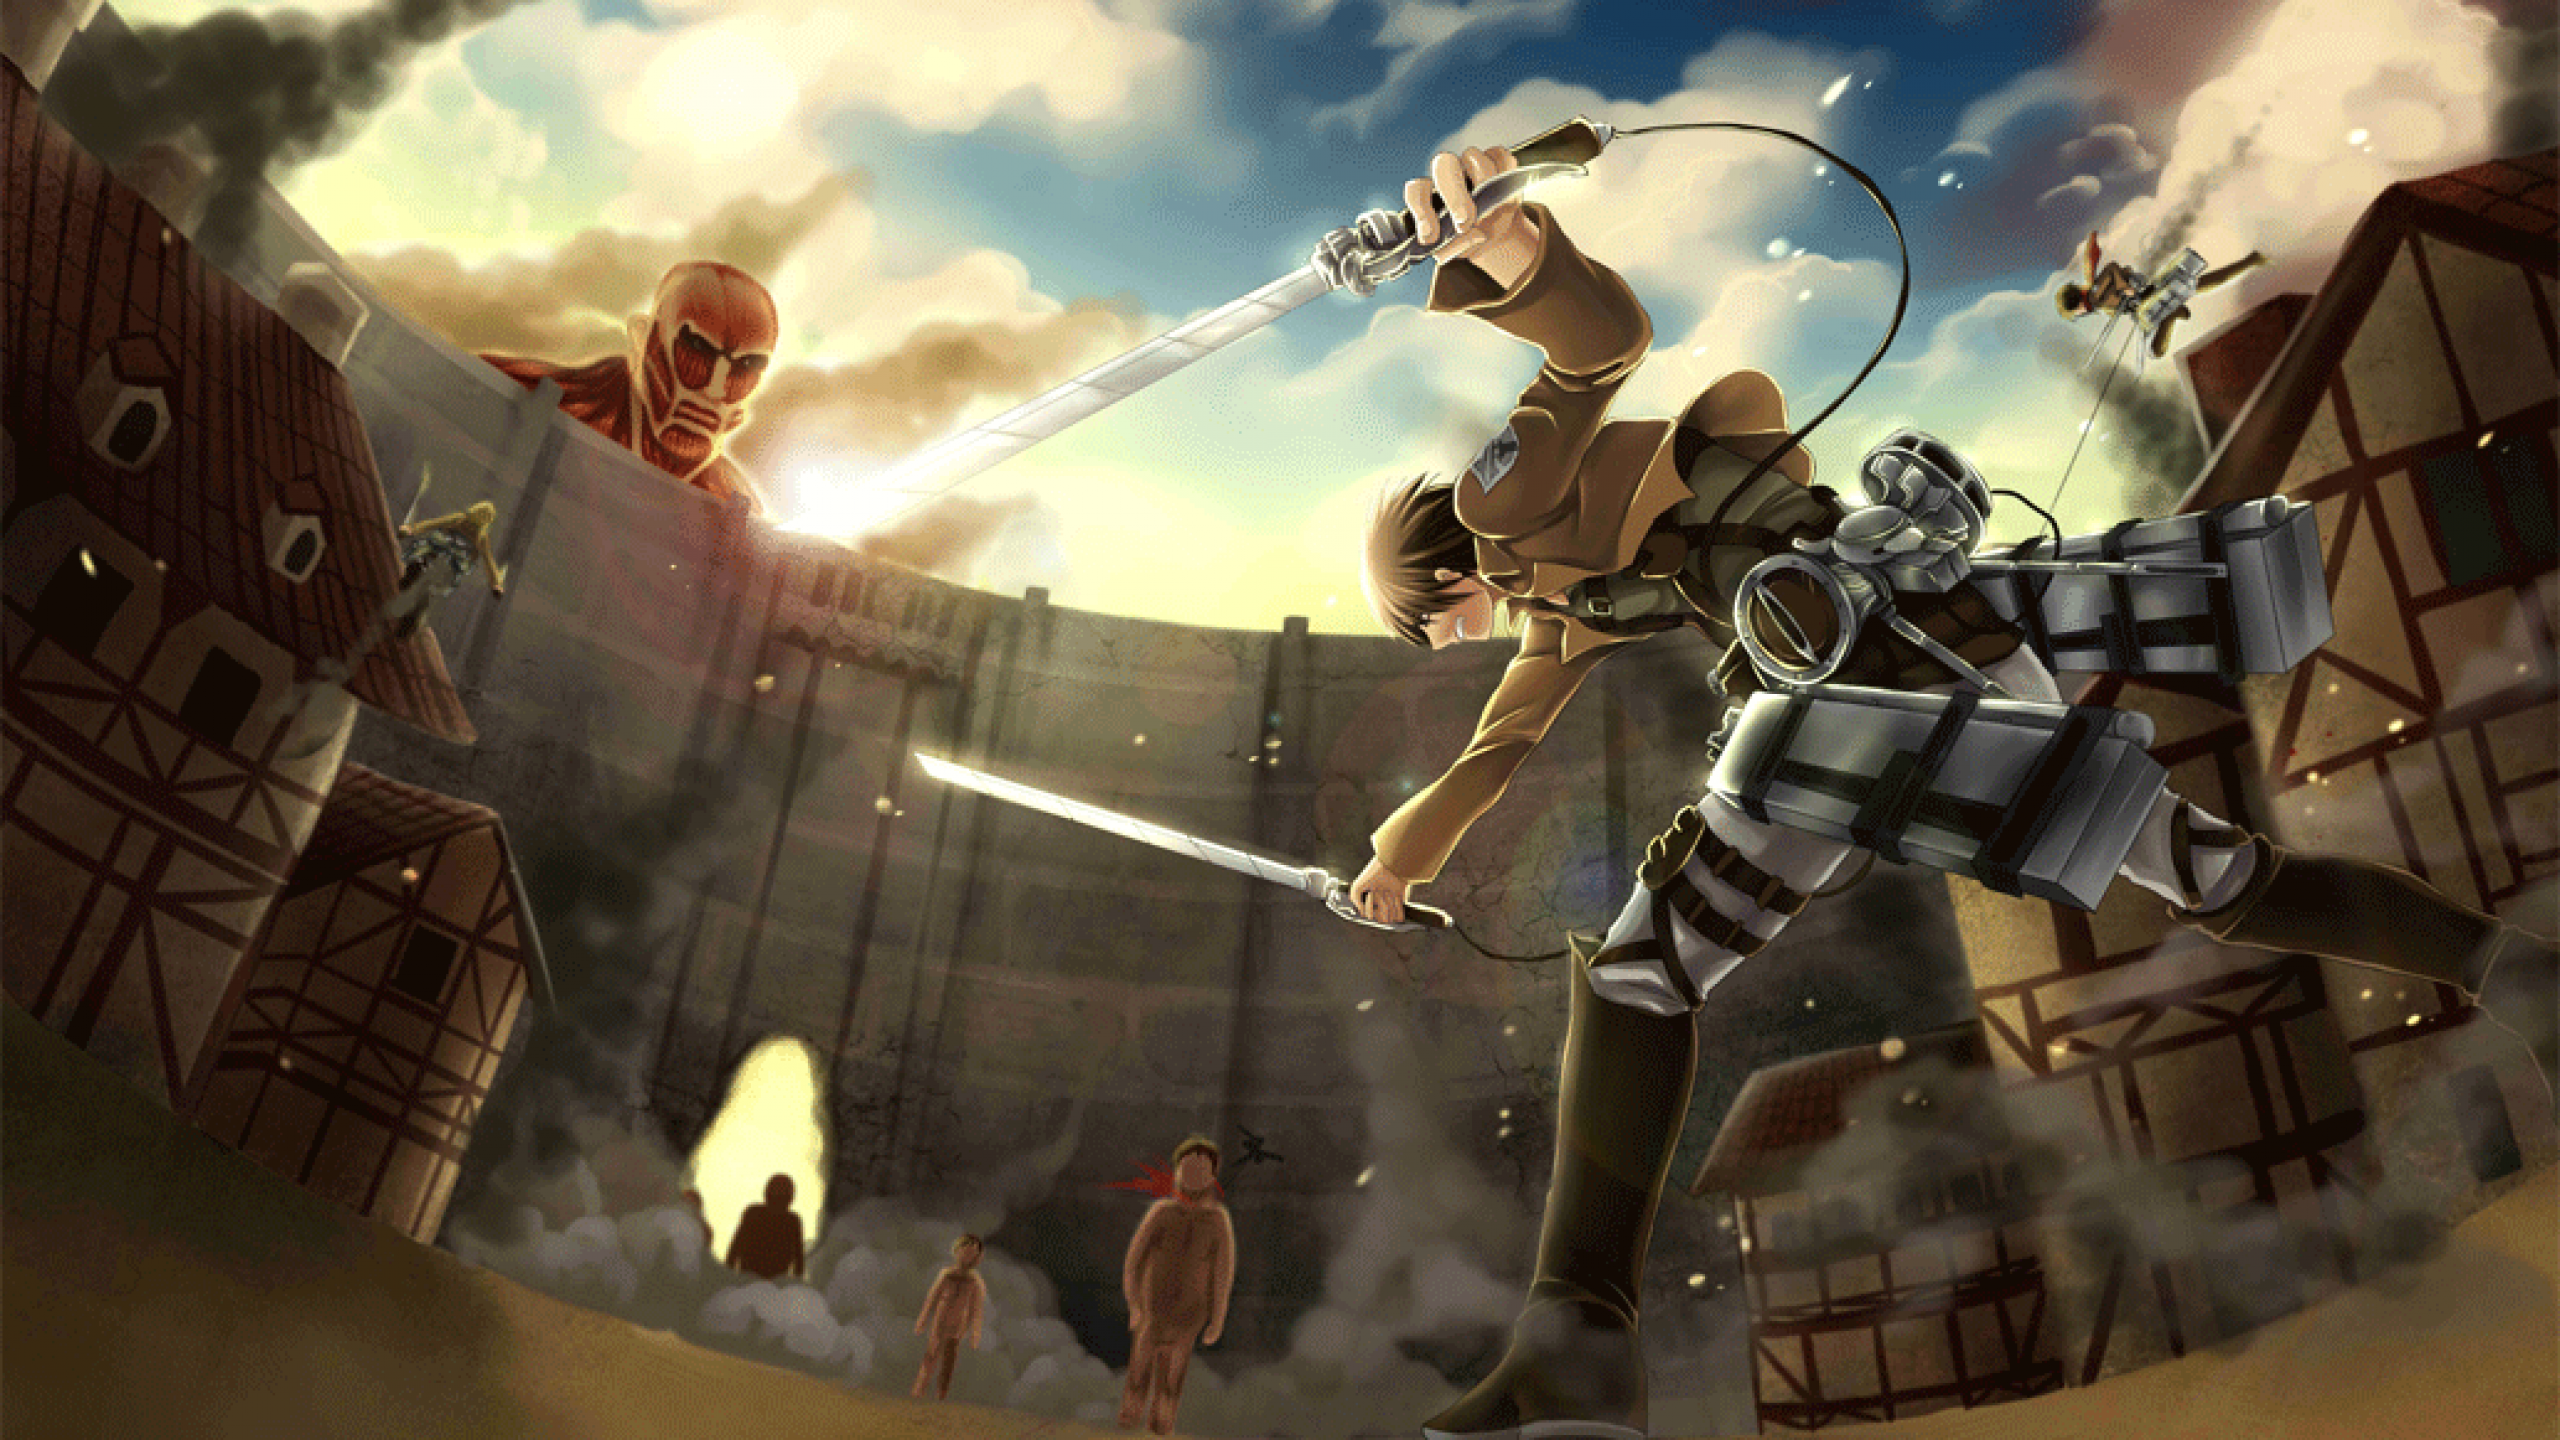 Shingeki No Kyojin Attack On Titan Images HD Wallpaper And Background Photos